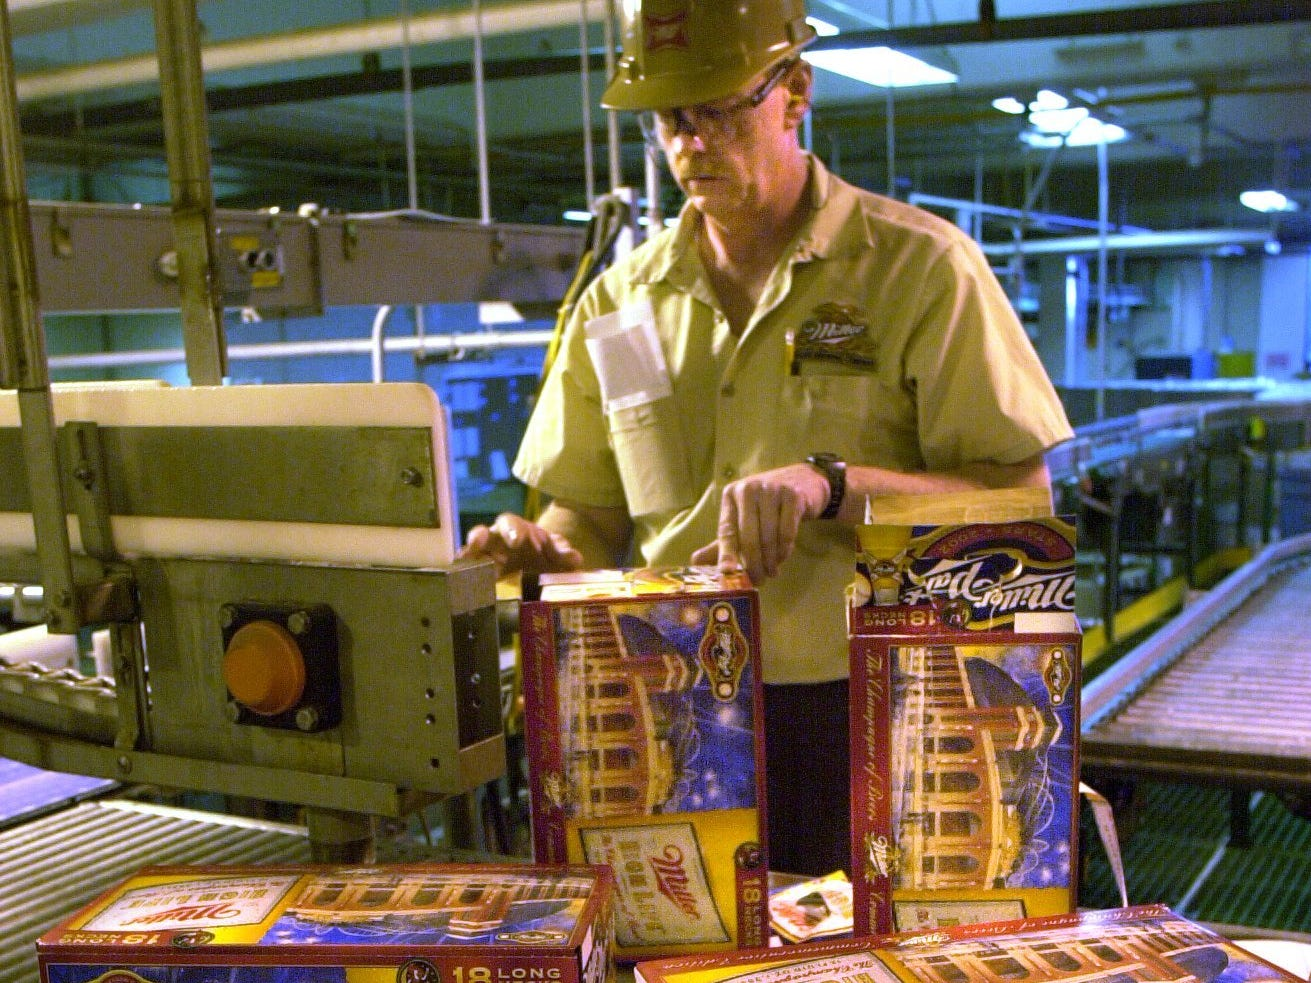 Steve Amundsen performs a first pack inspection as the B-52 line gears up to package special-labeled 18 packs of long necks of Miller High Life in packages depicting Miller Park and the All Star Game.